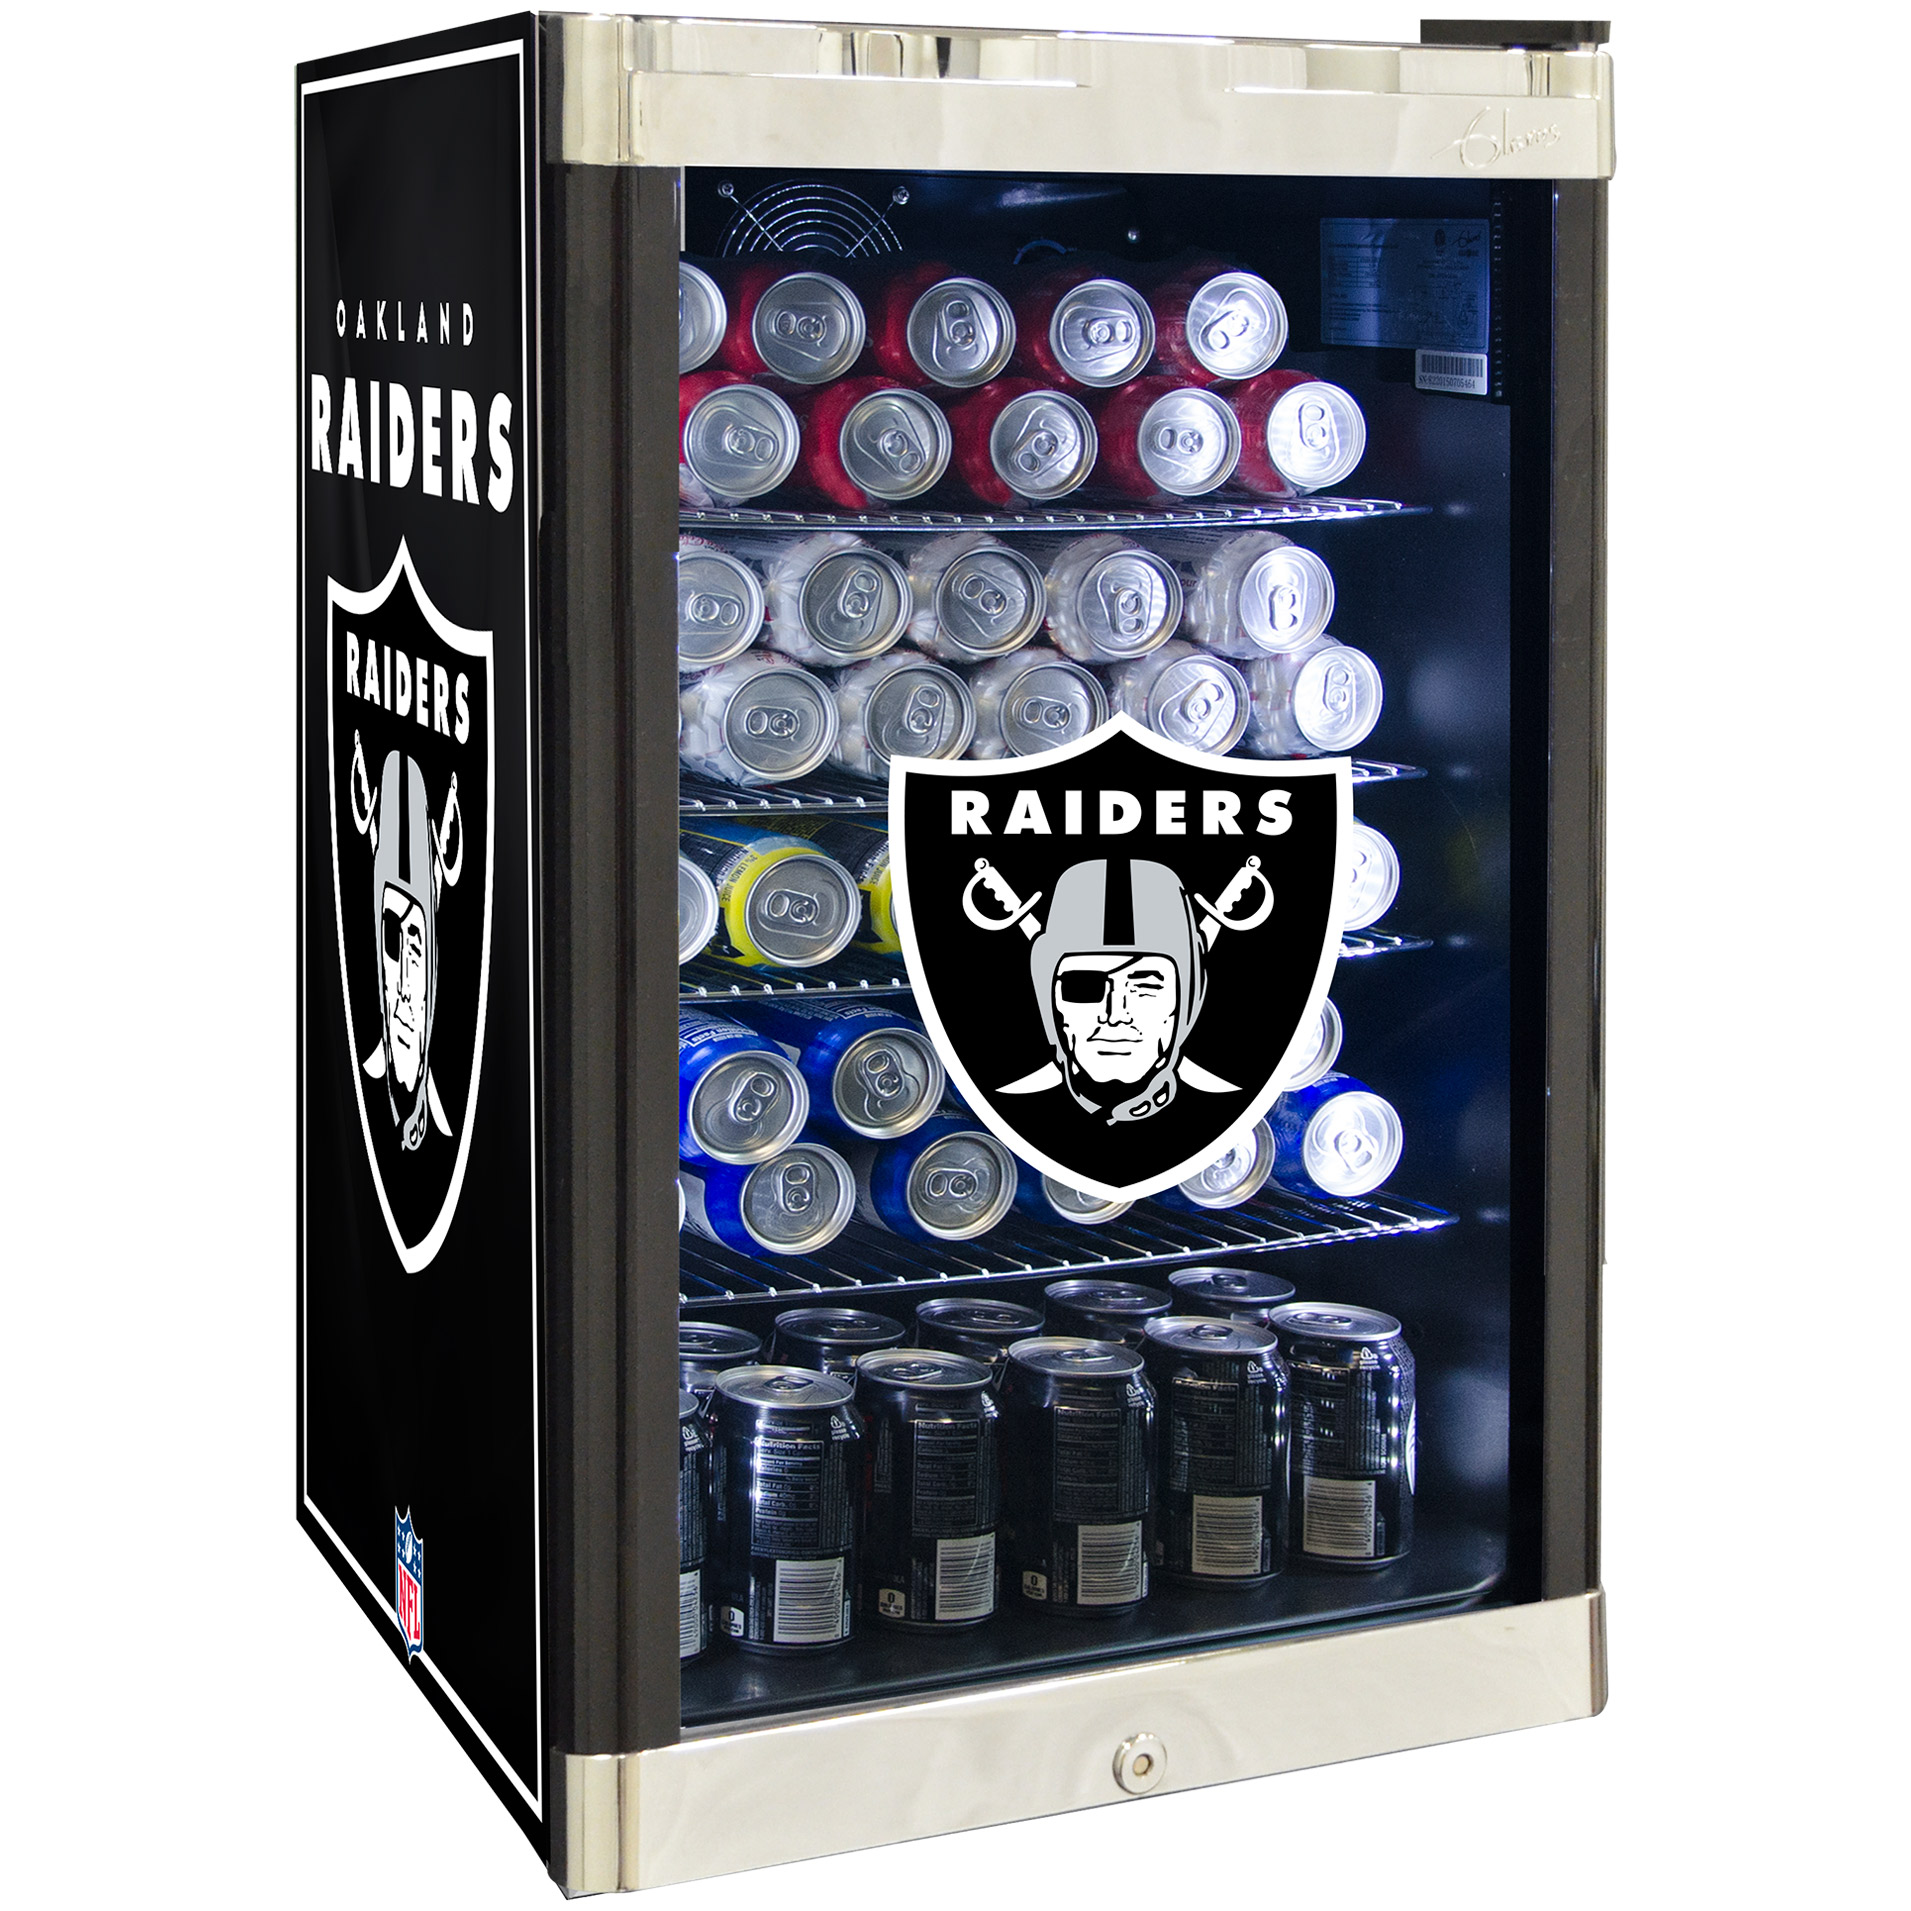 NFL Refrigerated Beverage Center 4.6 cu ft